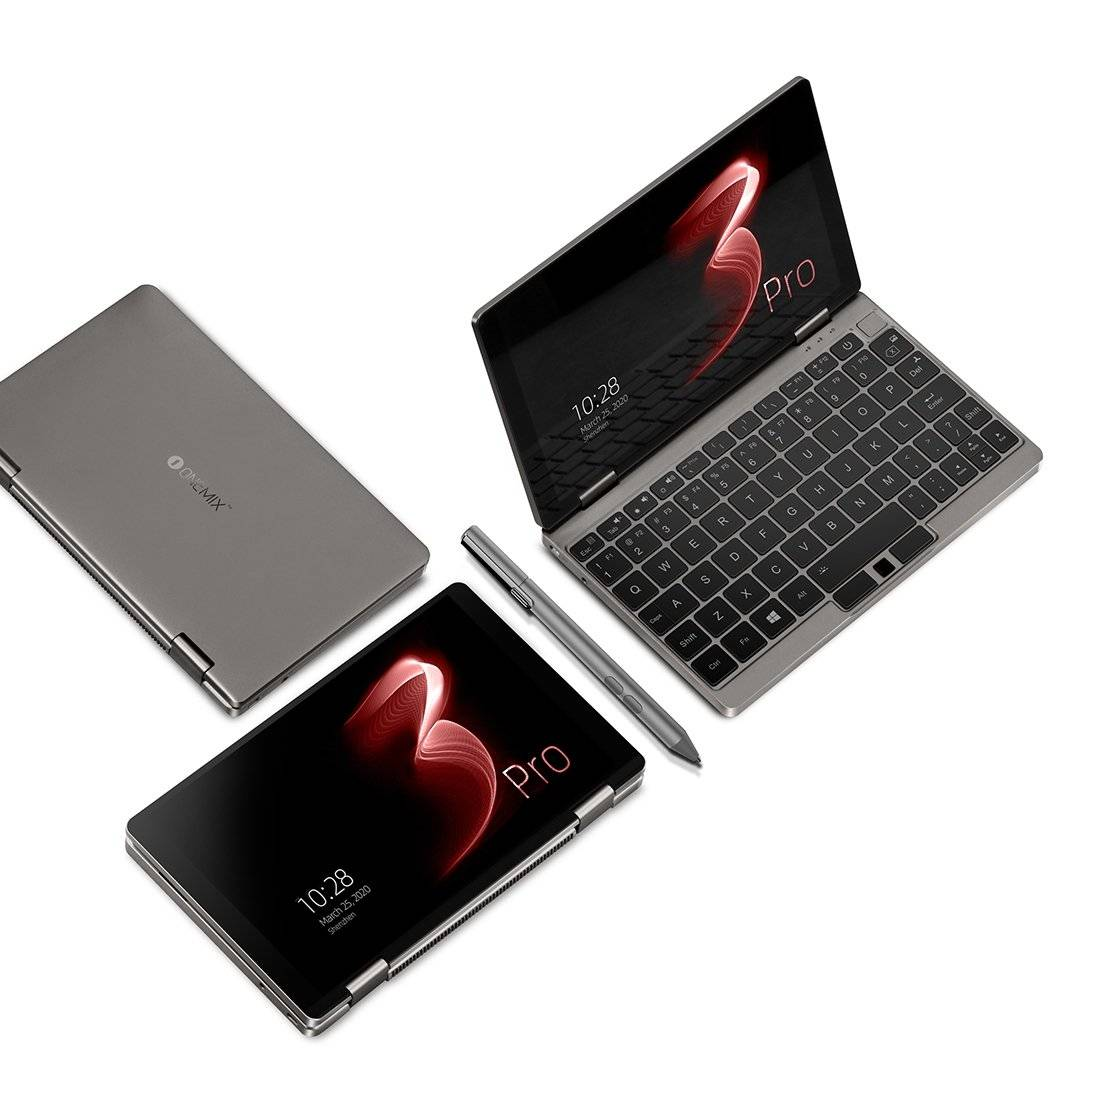 One Netbook Mix 3 Pro Platinum in various modes such as Tablet, Laptop and Closed